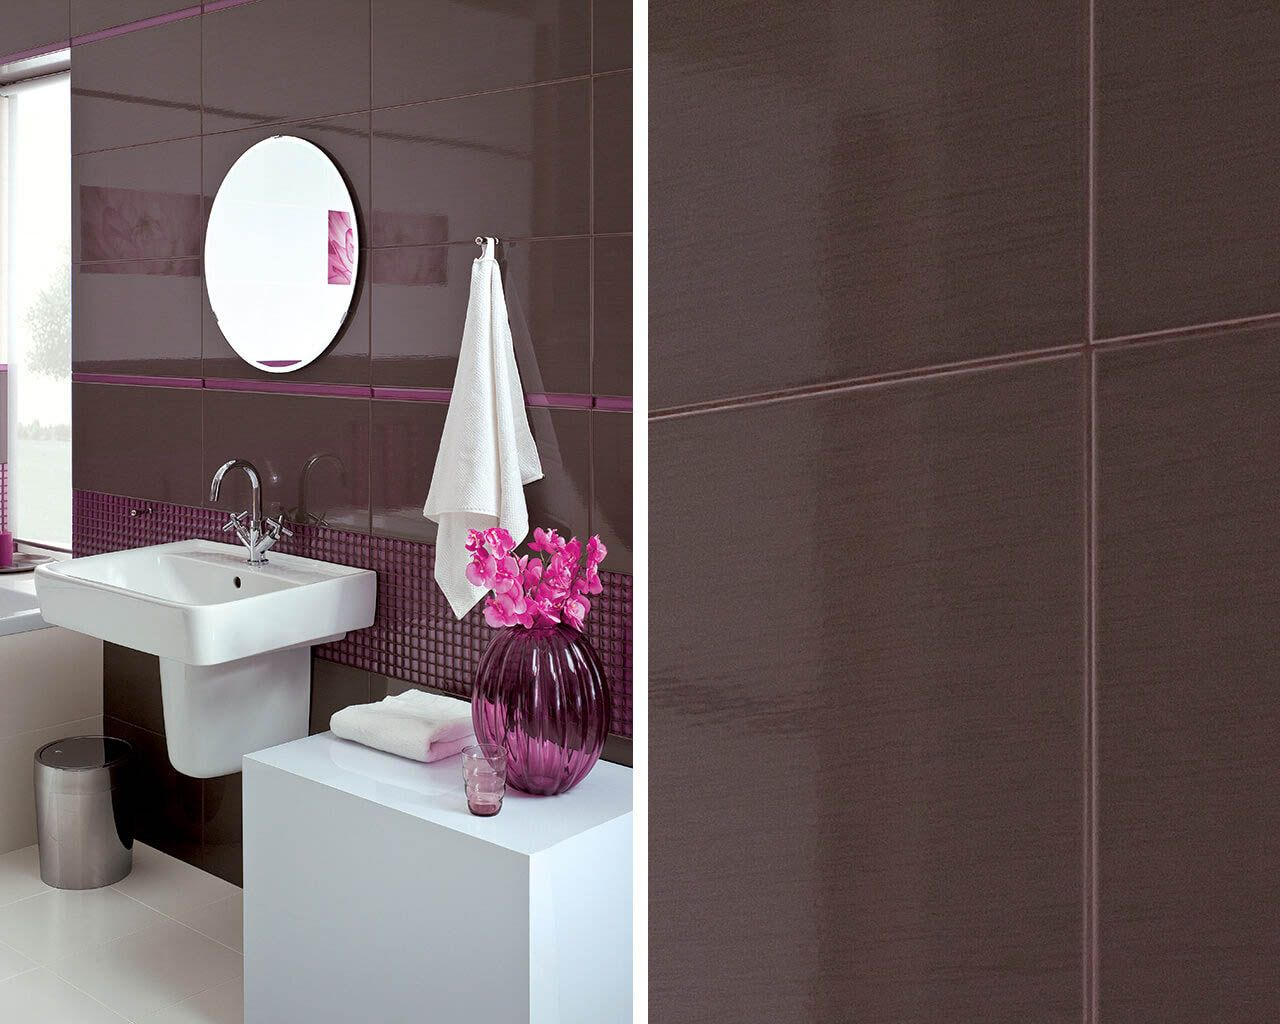 Plum and white corner with a washbasin in a modern bathroom